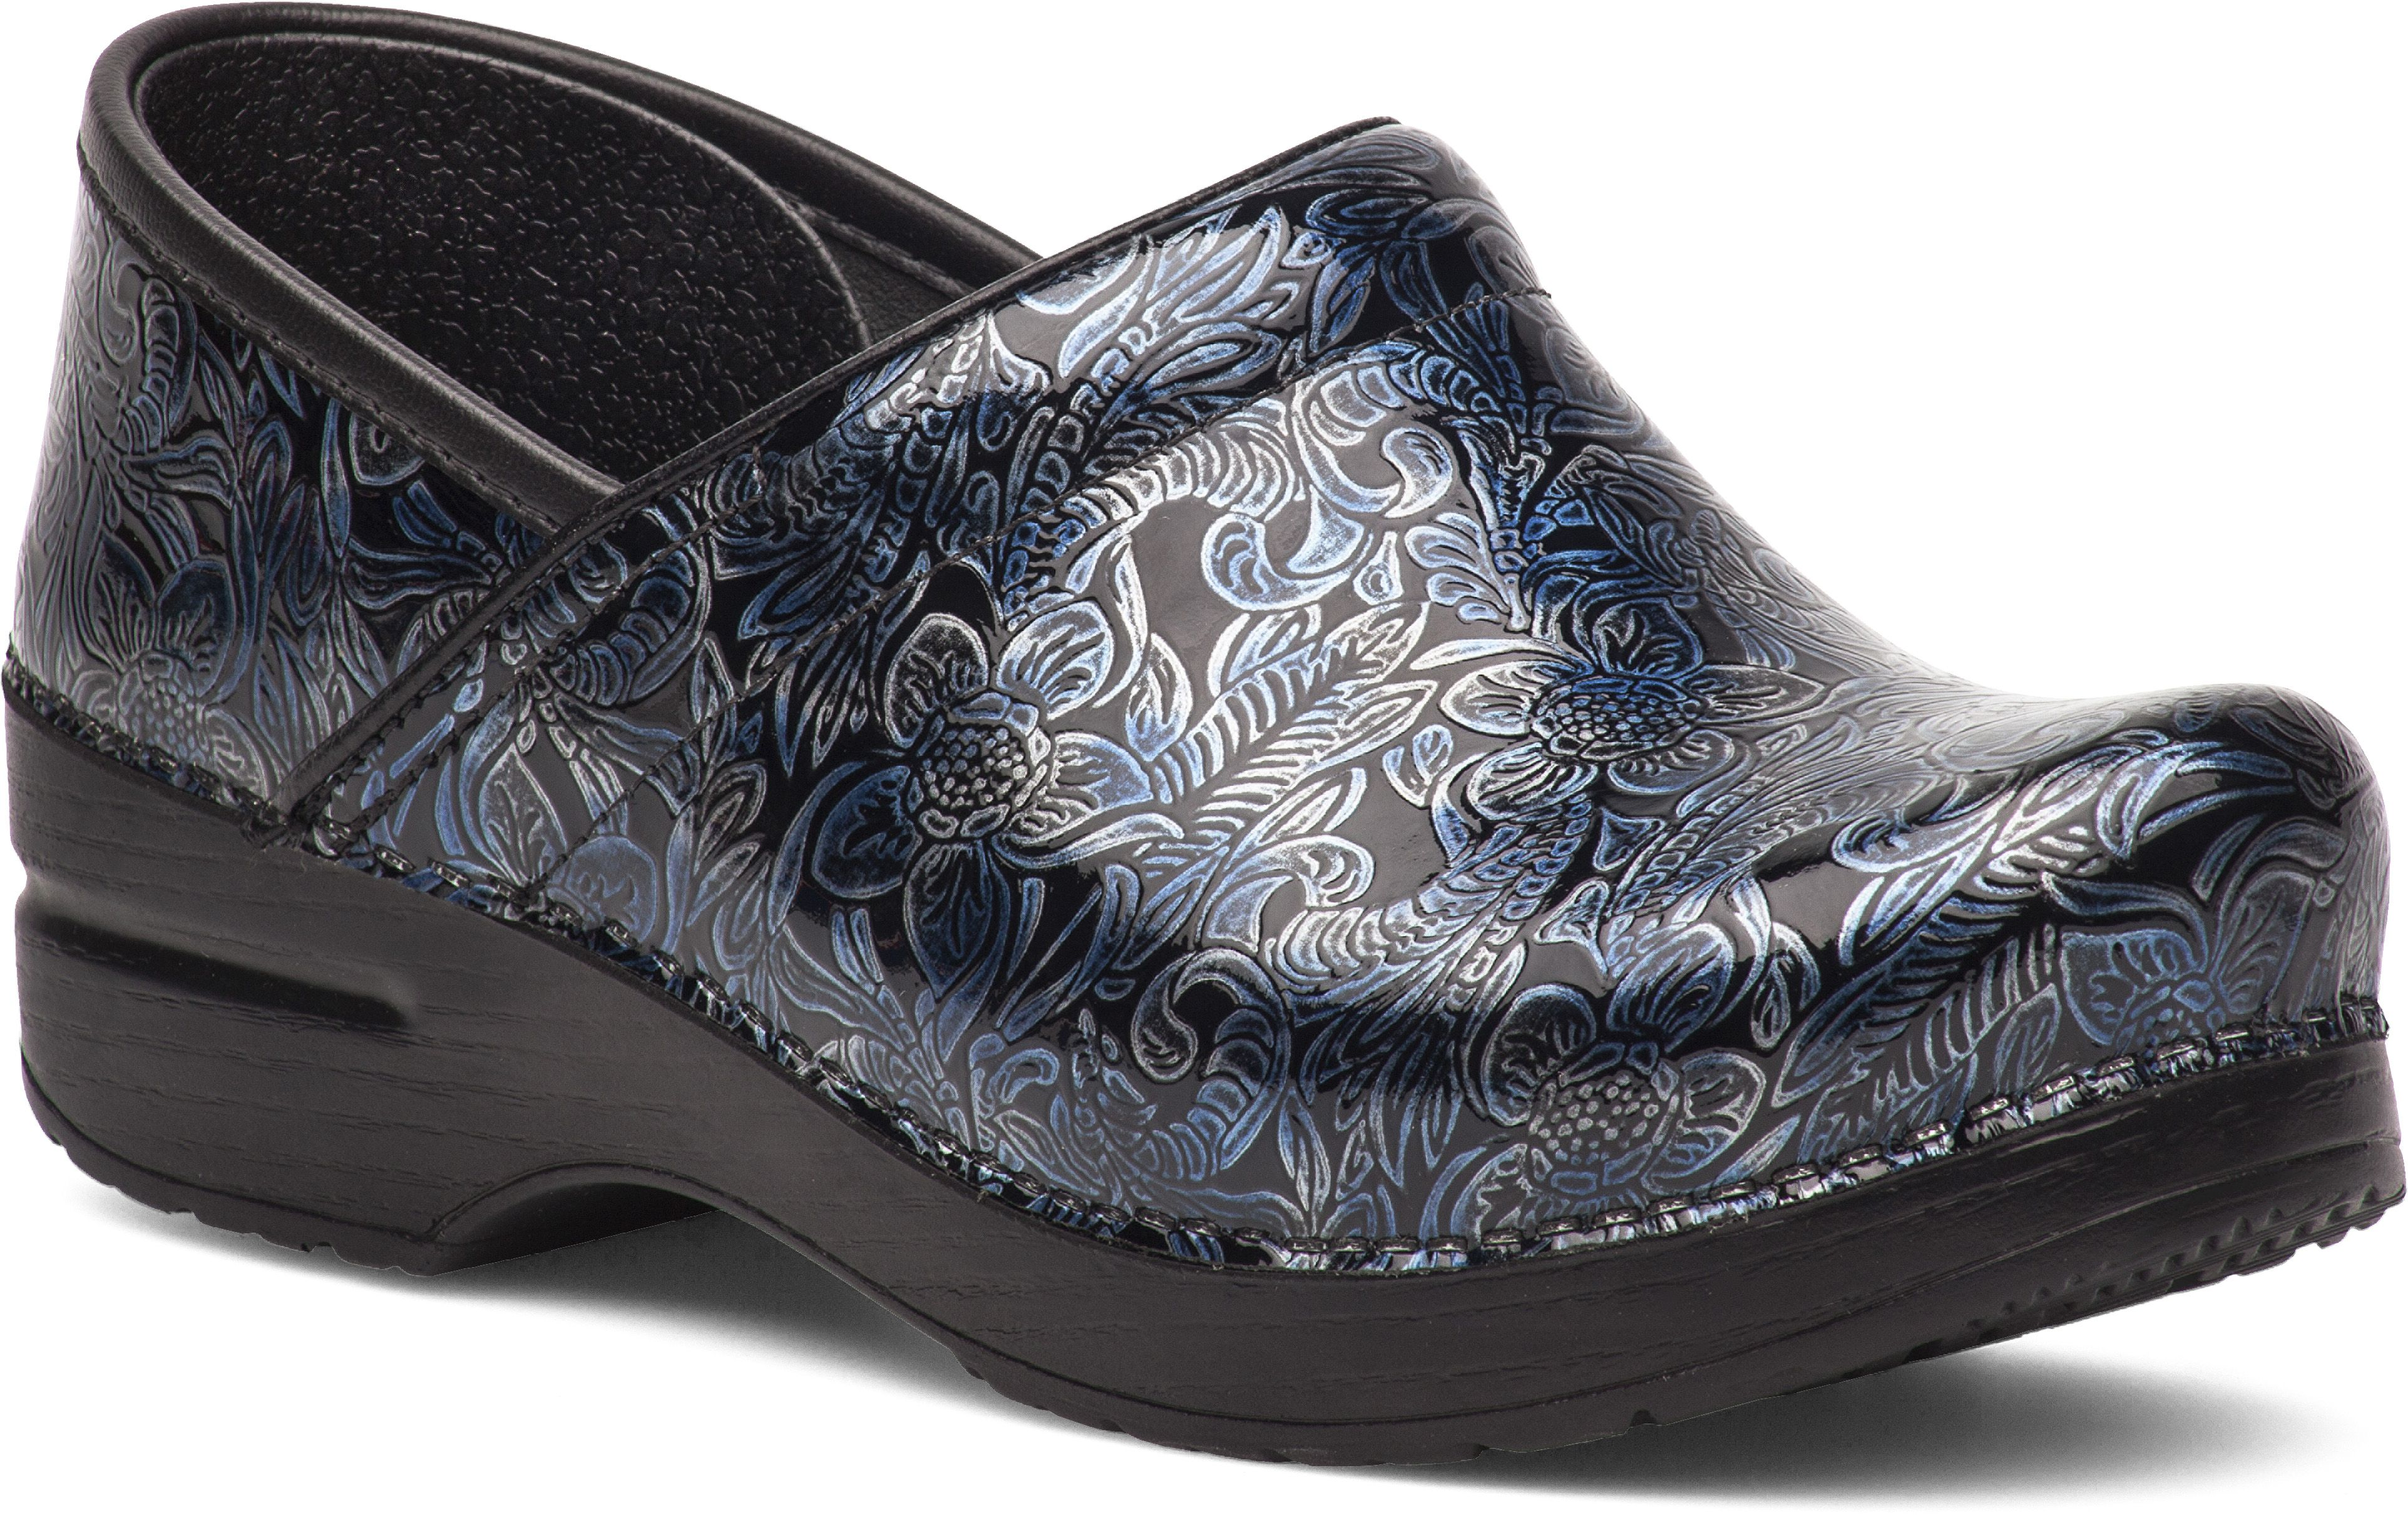 Dansko Womens Professional Clogs in Silver / Blue Tooled Patent Leather